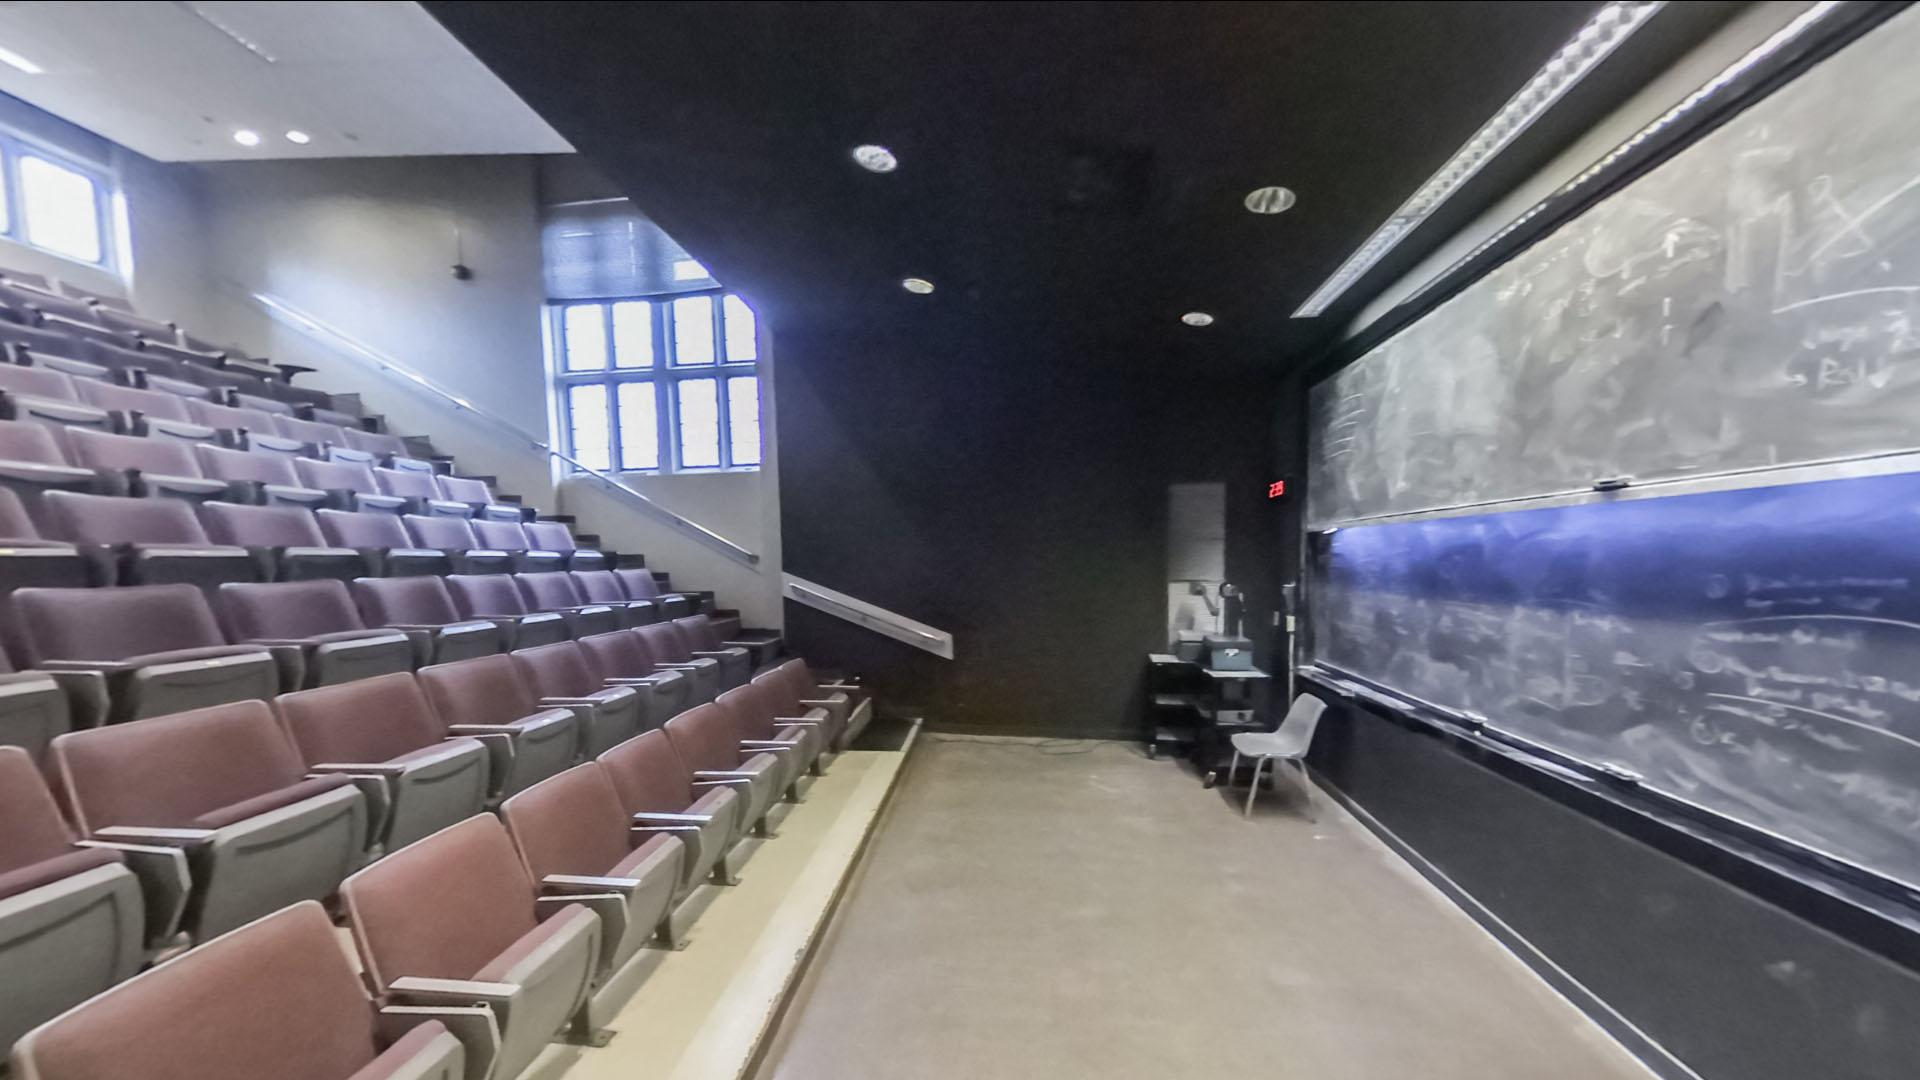 MATH LECTURE HALL